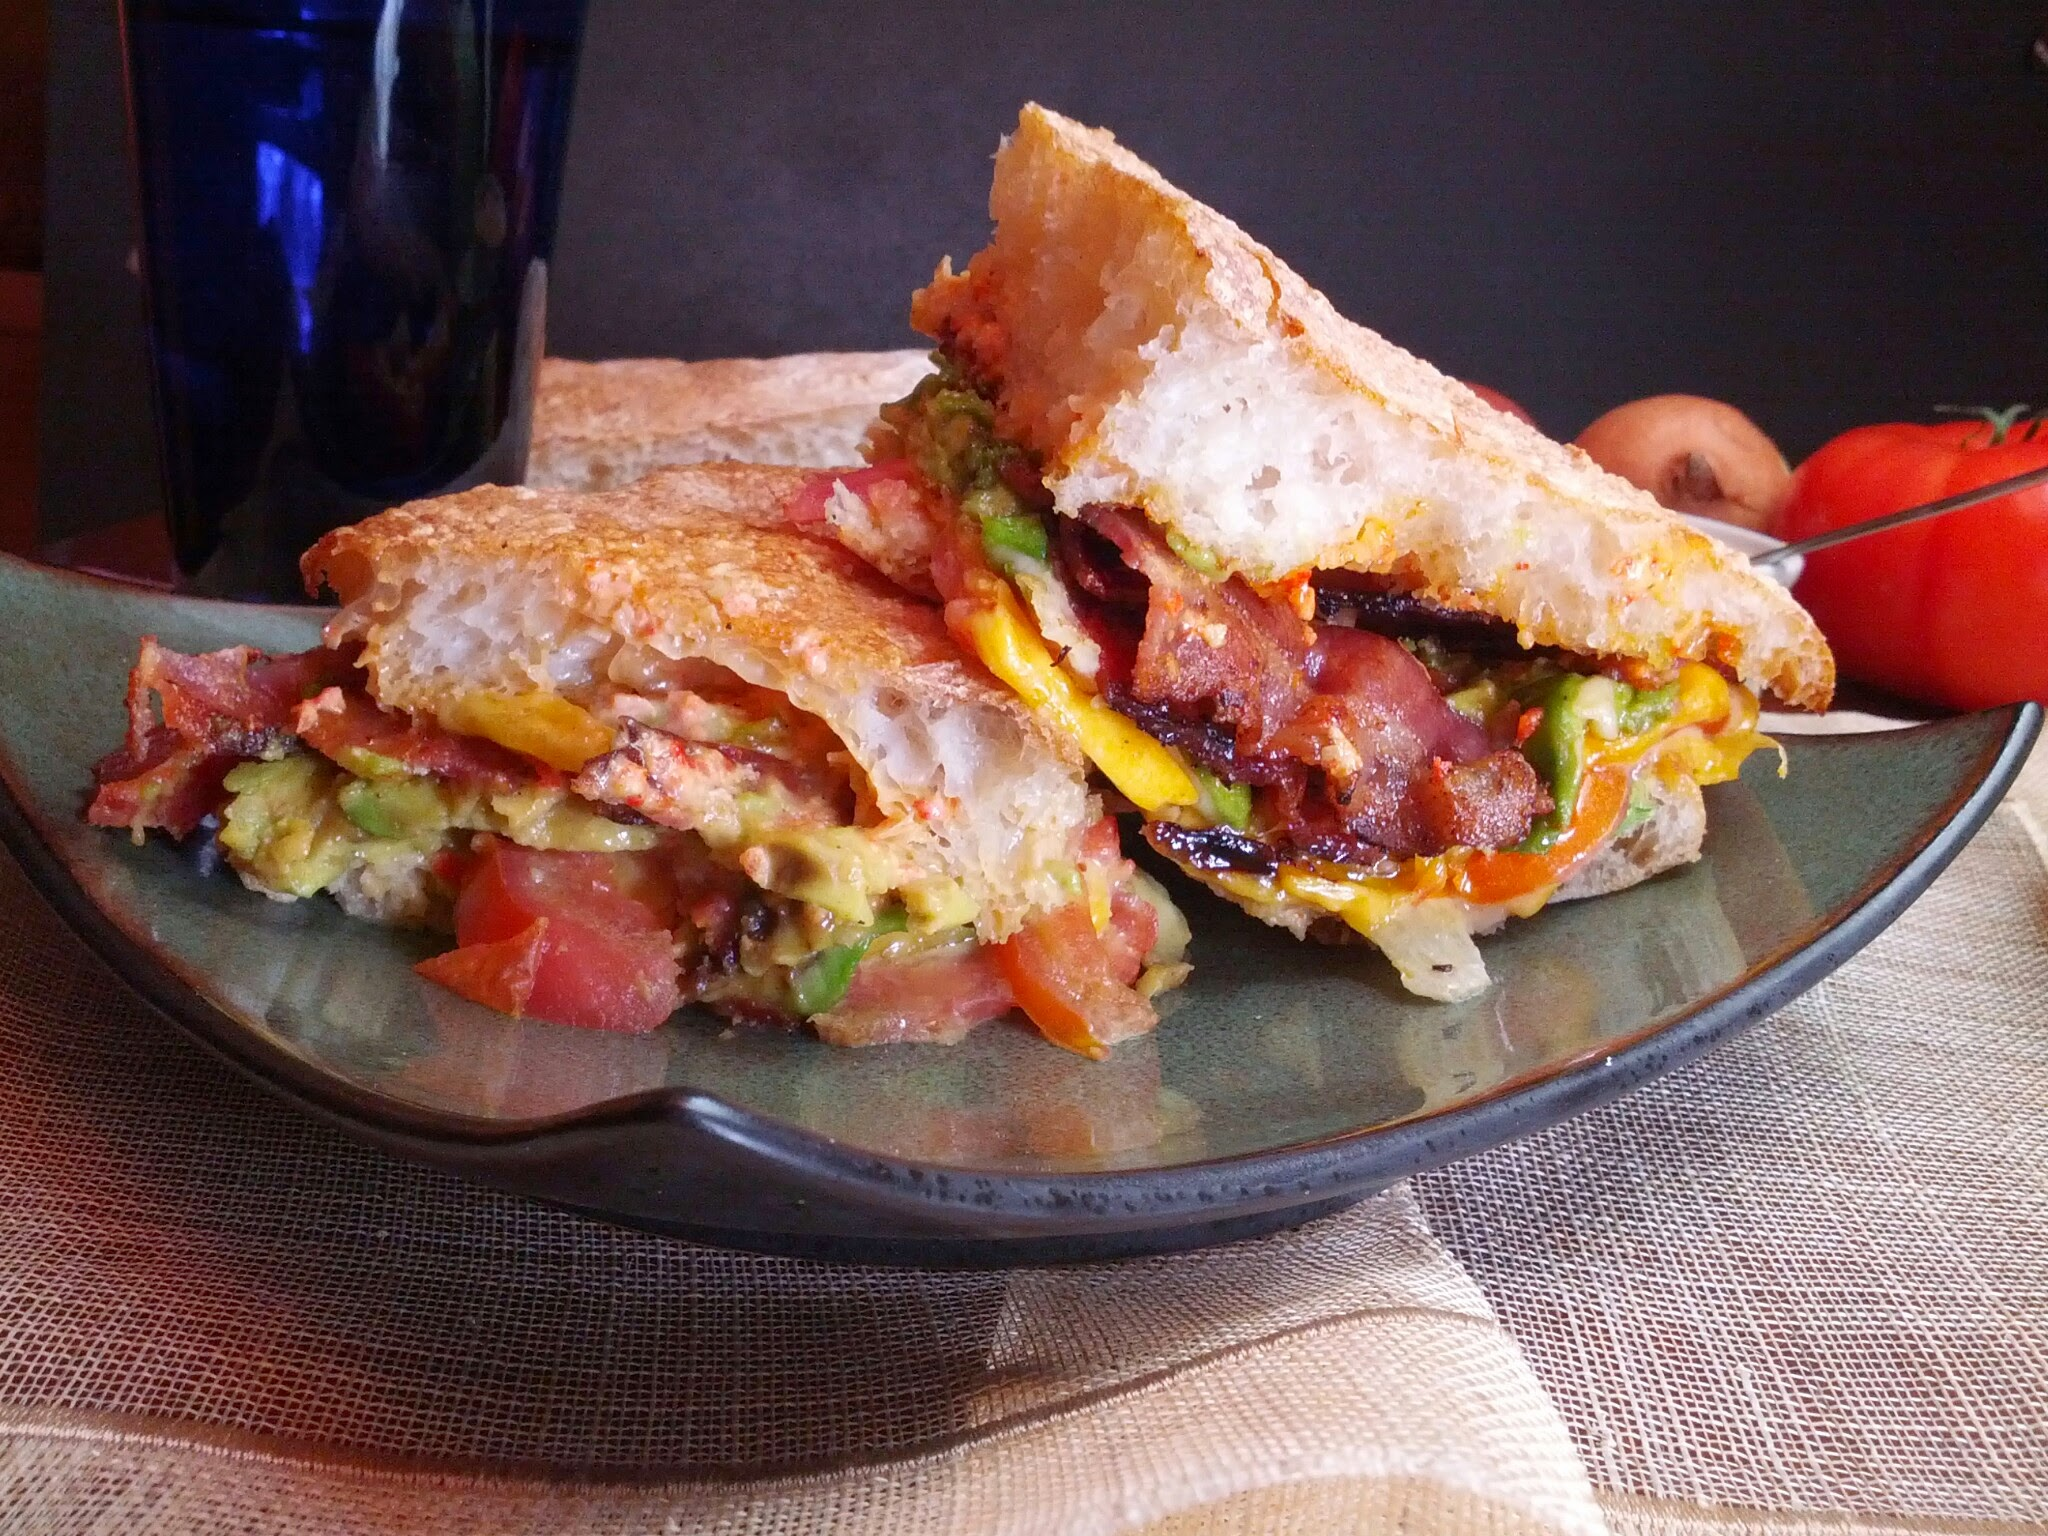 The sandwich to end all sandwiches… literally